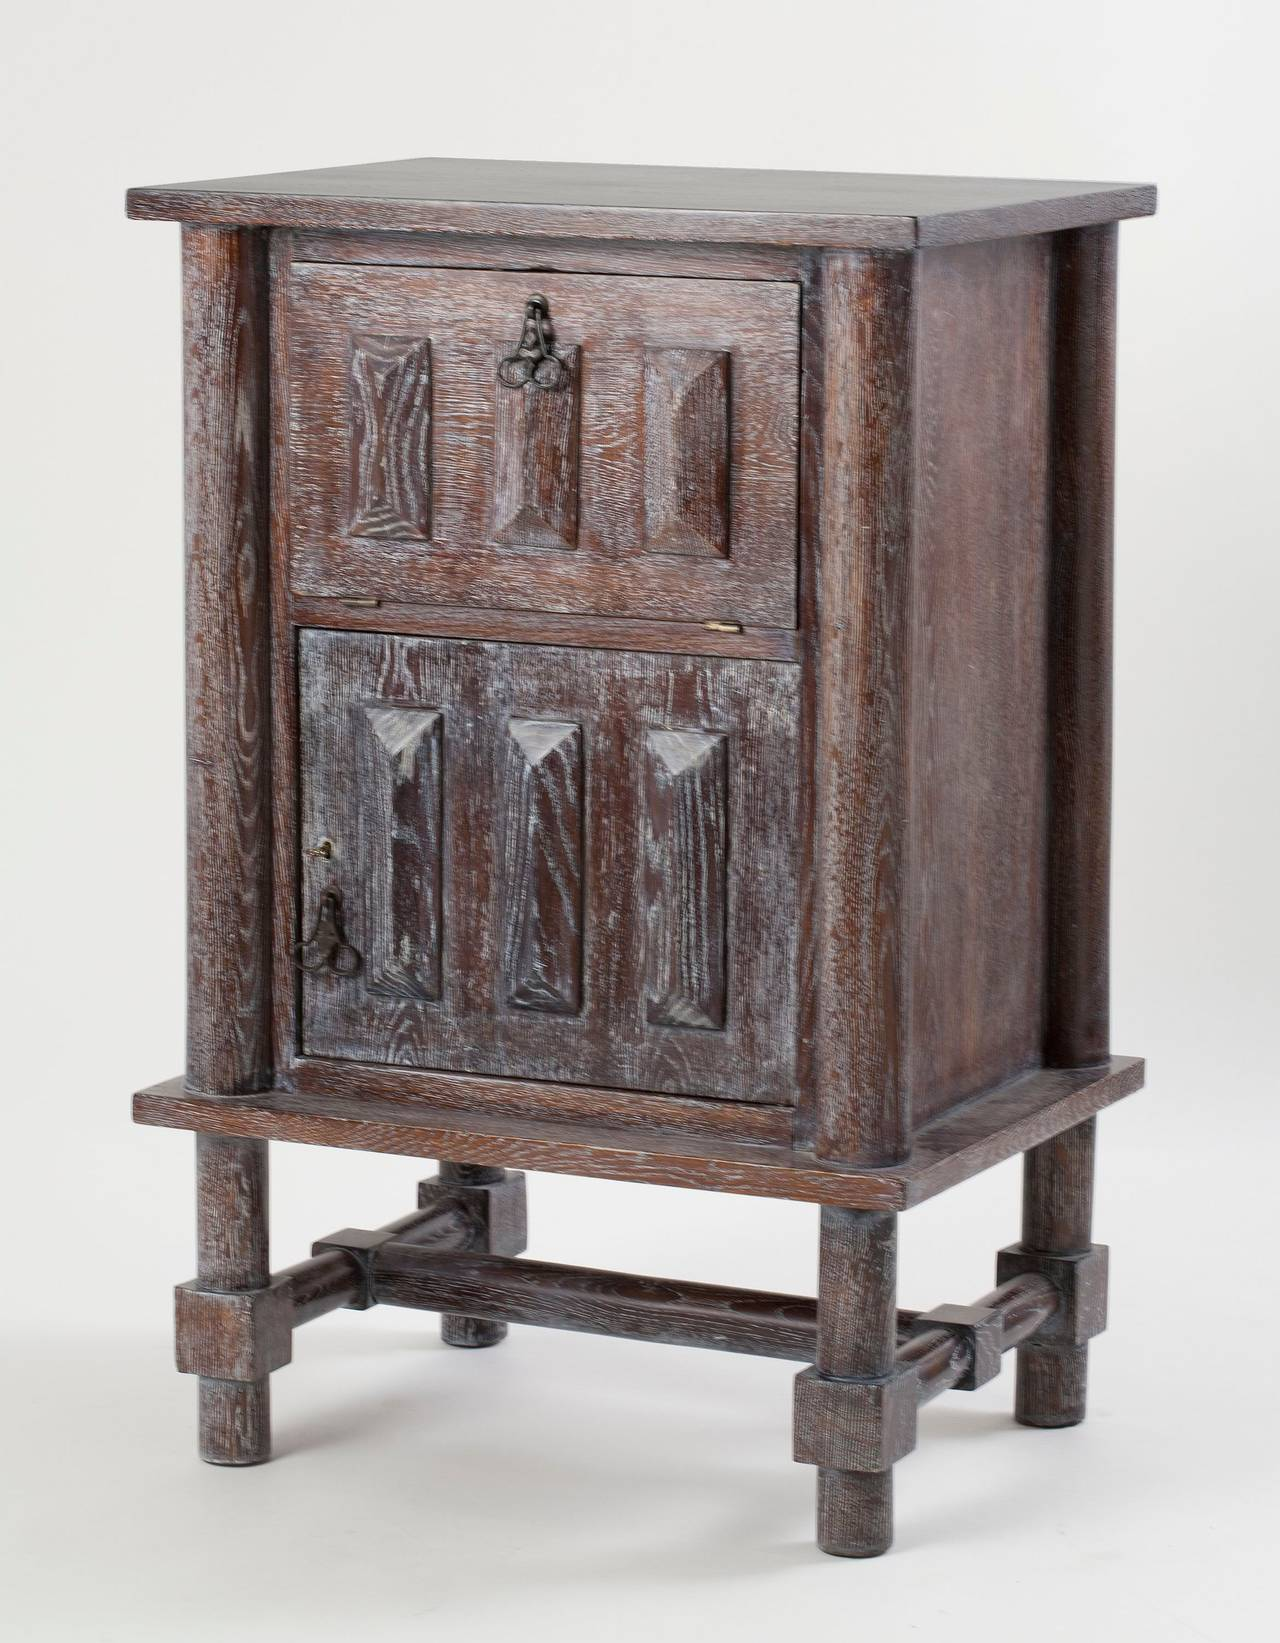 Two-door cabinet in limed oak with wrought iron handles, by Jacques Adnet  For illustrations of similar, larger cabinets, see: Cheronnet, Louis. Jacques Adnet. Paris: Art et Industrie, 1948. pl. 22. Hardy, Alain-René and Gaëlle Millet. Jacques